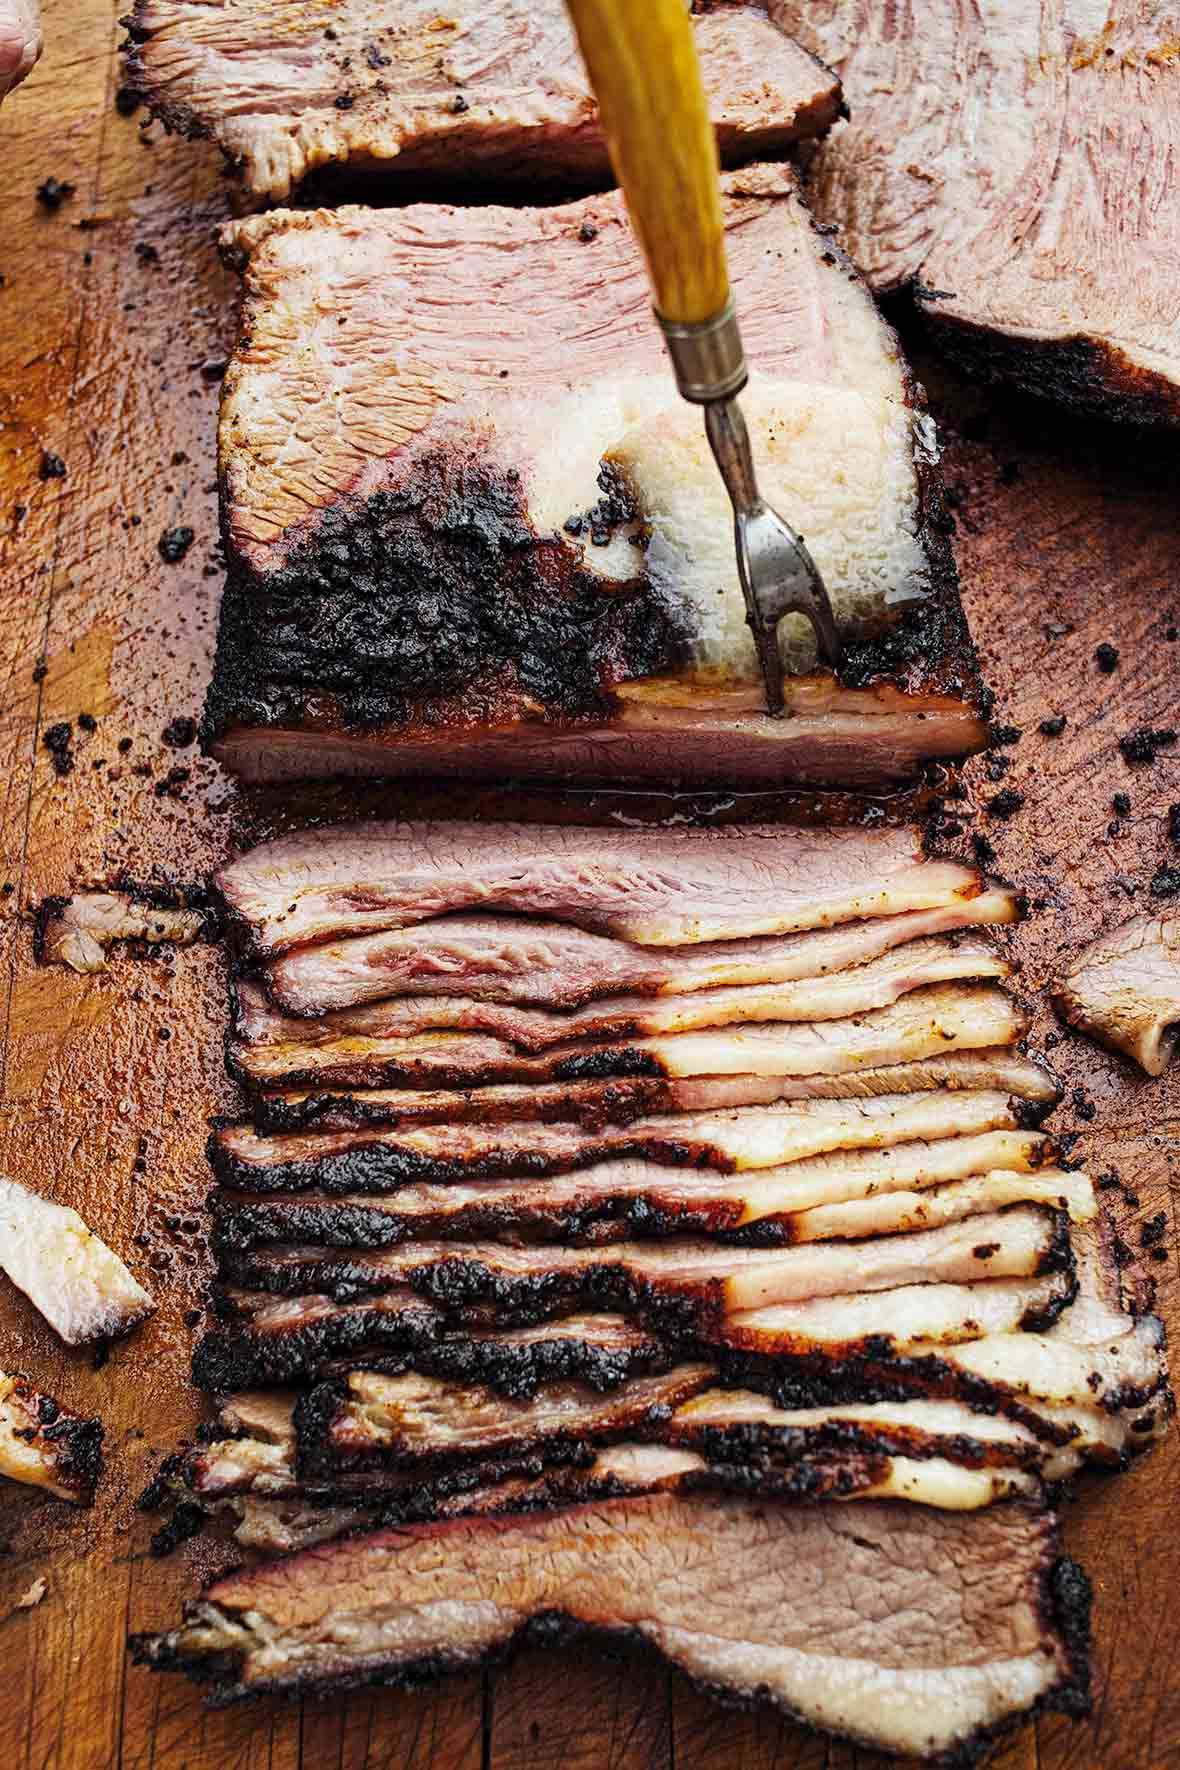 A slab of deeply smoked barbecue beef brisket being sliced on a cutting board